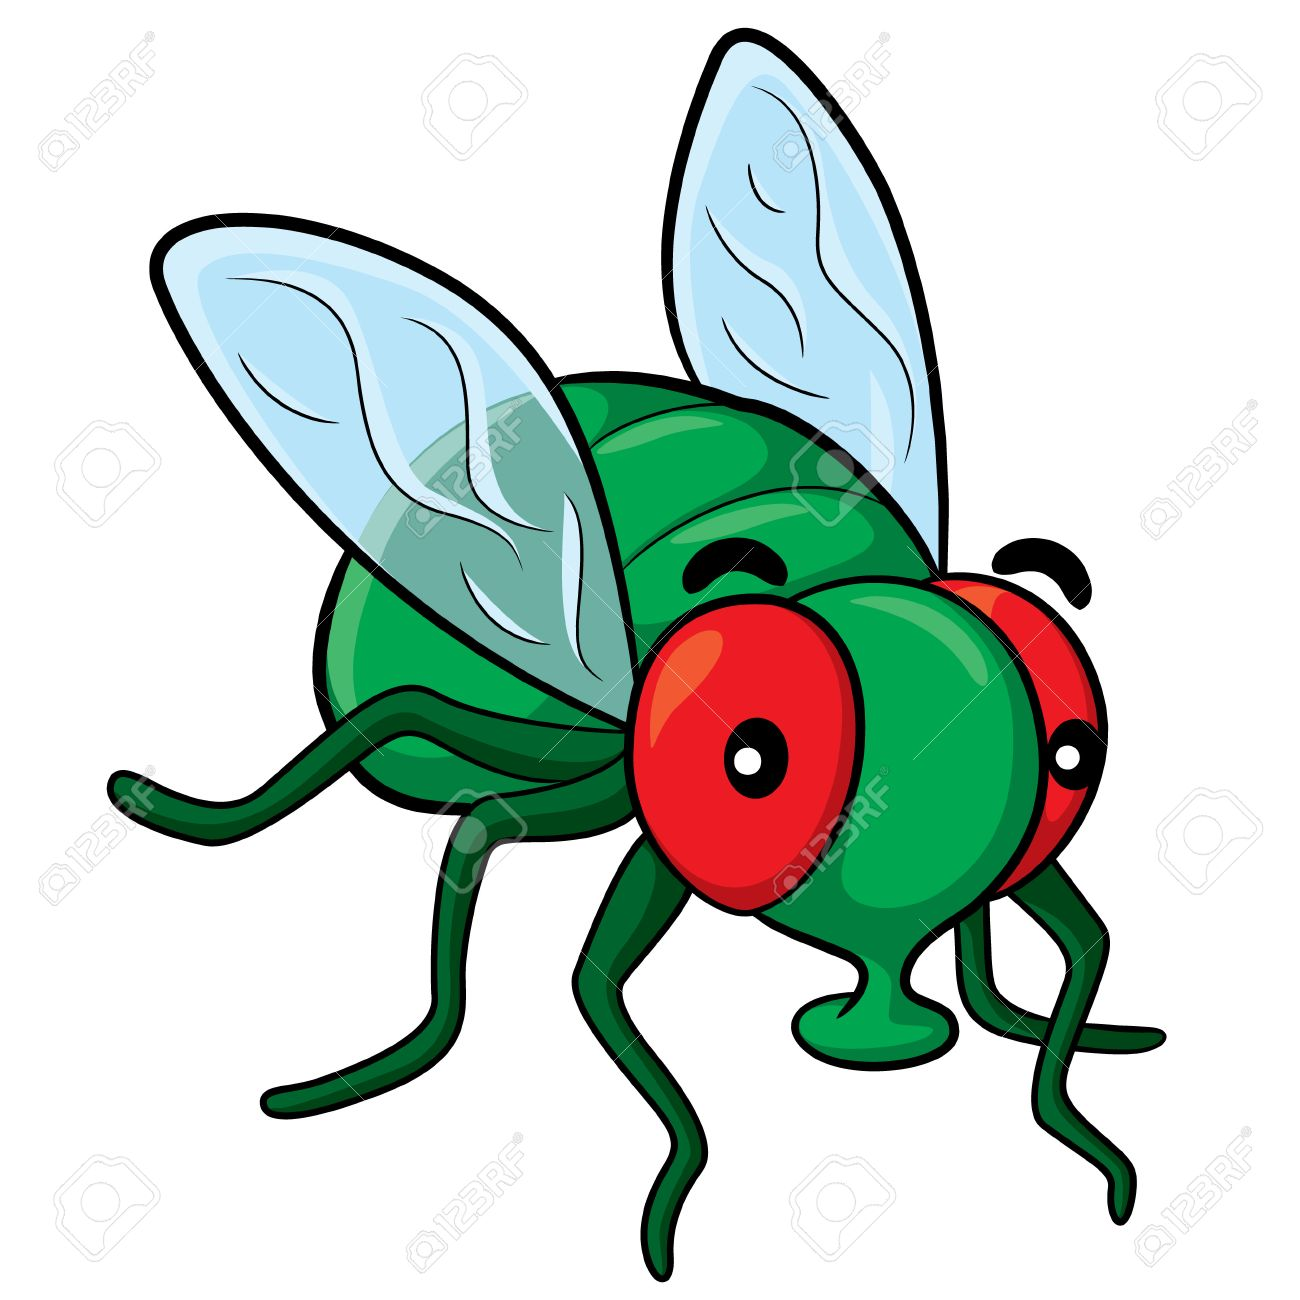 Cartoon flies clipart 4 » Clipart Station.